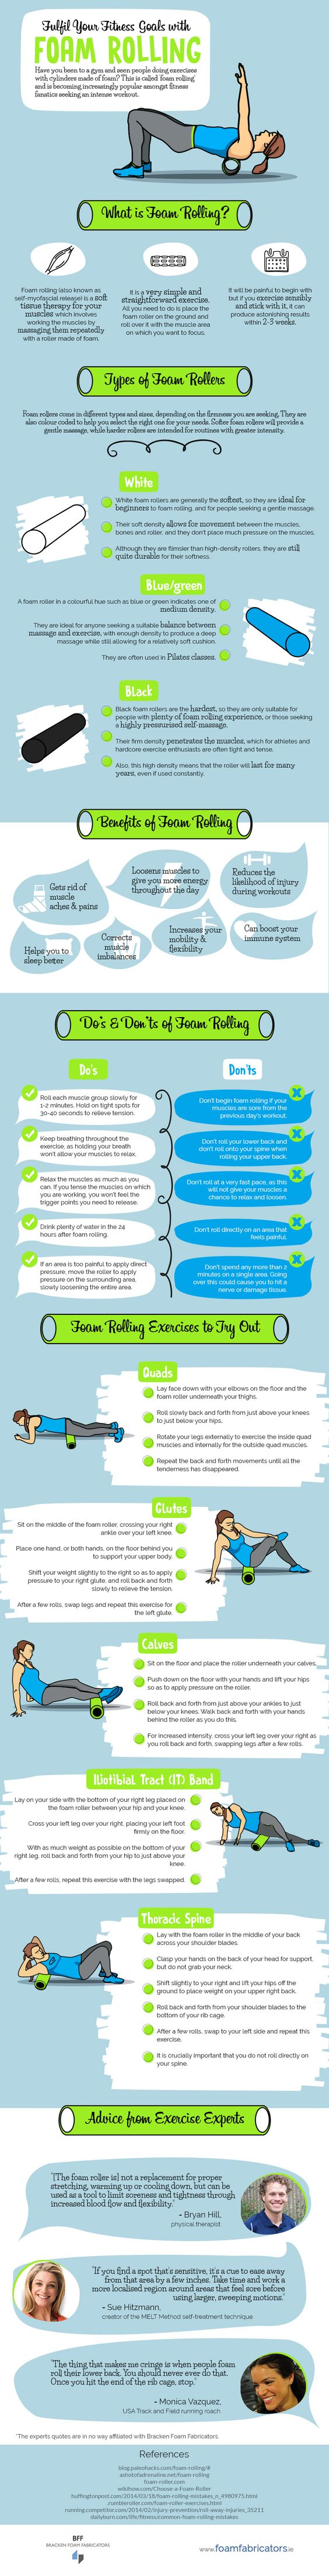 benefits of foam rolling